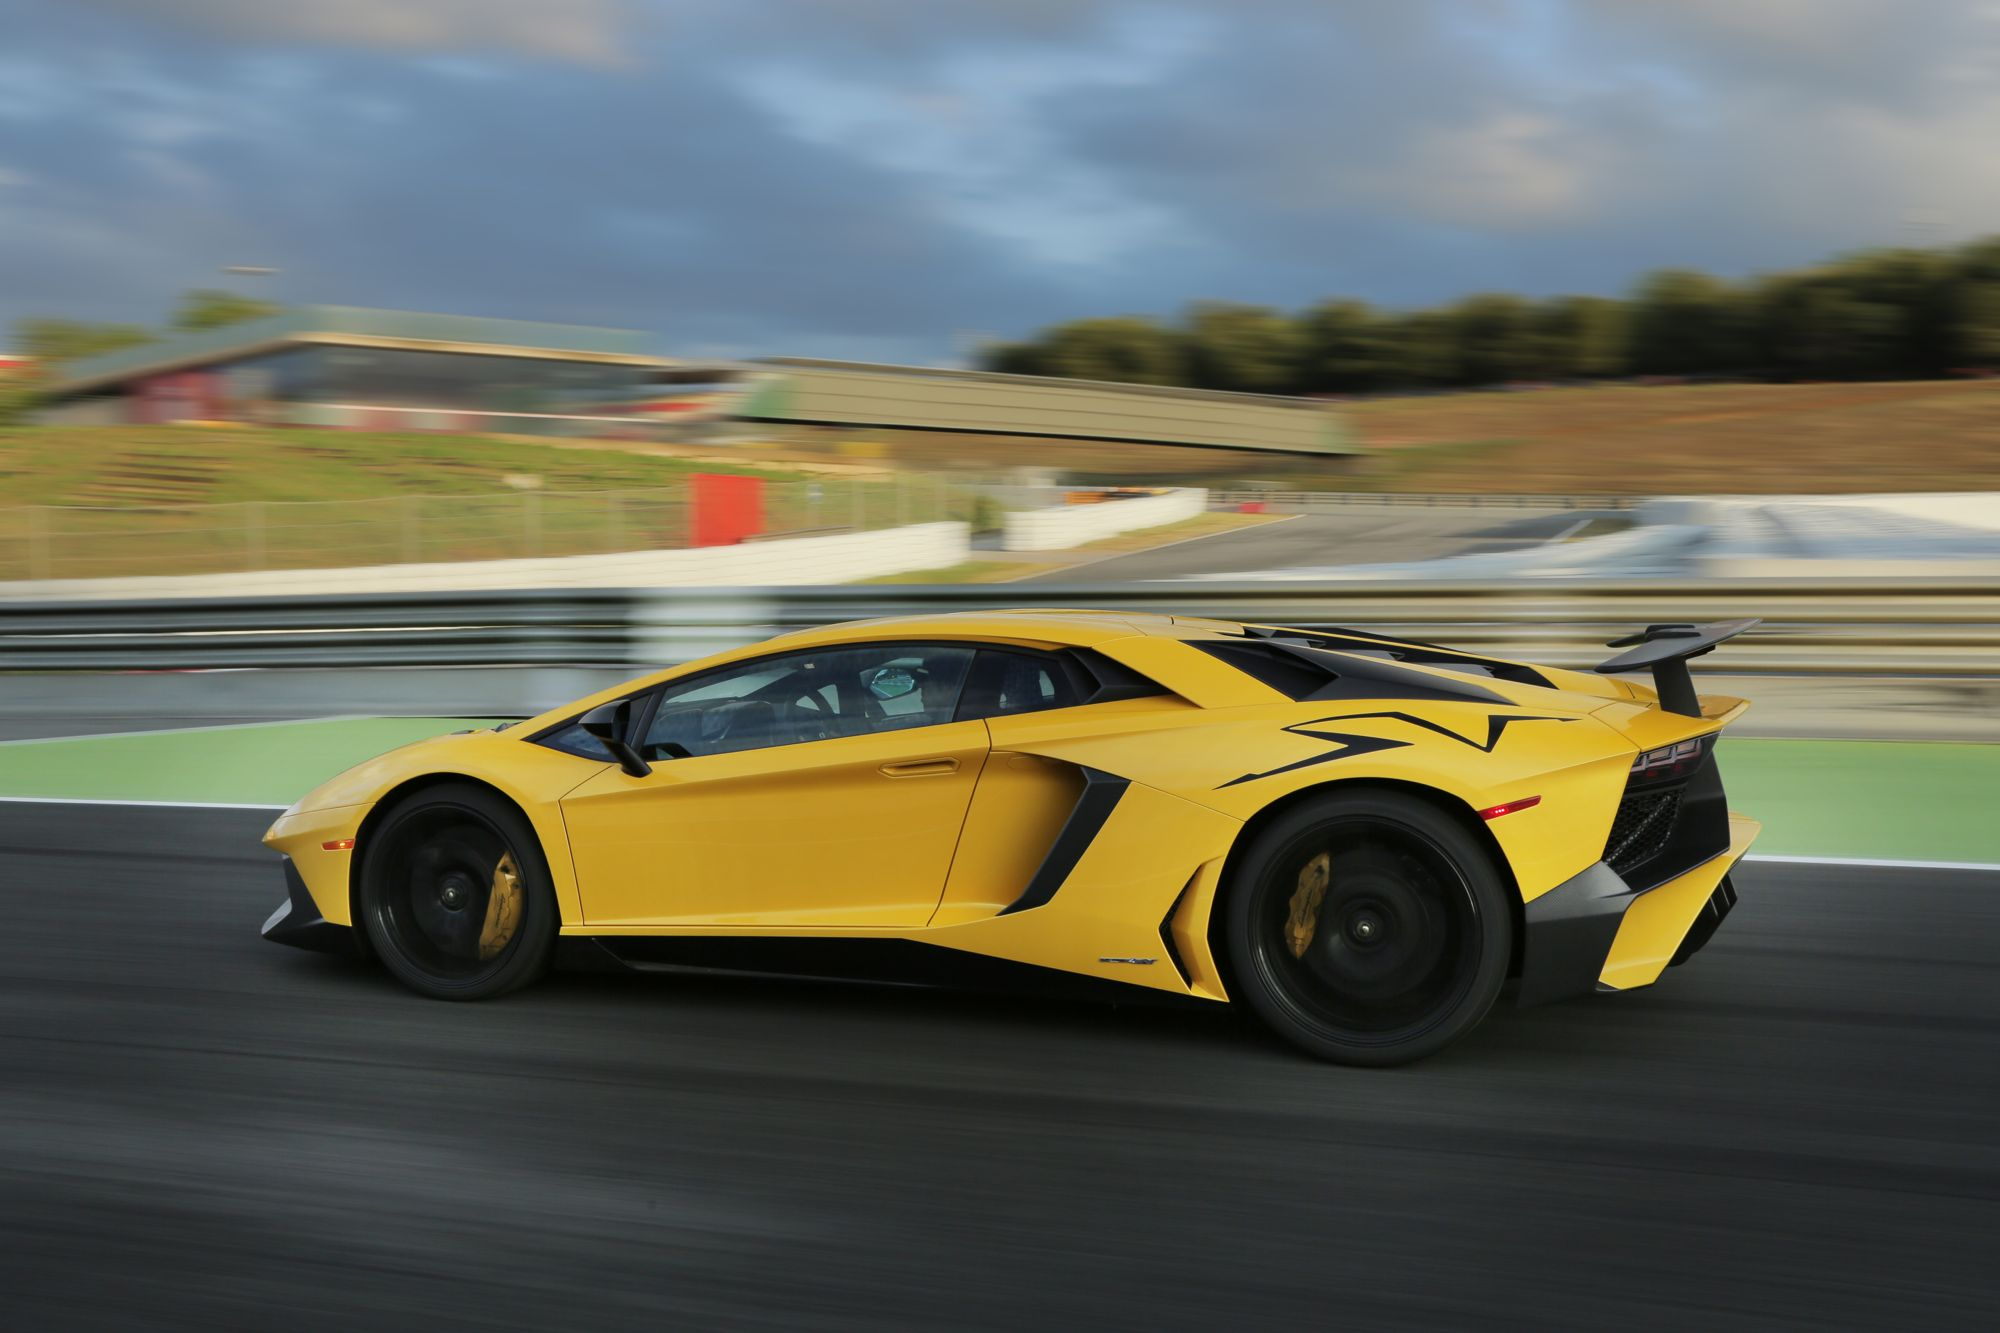 2016 Lamborghini Aventador Sv Review Photos Caradvice